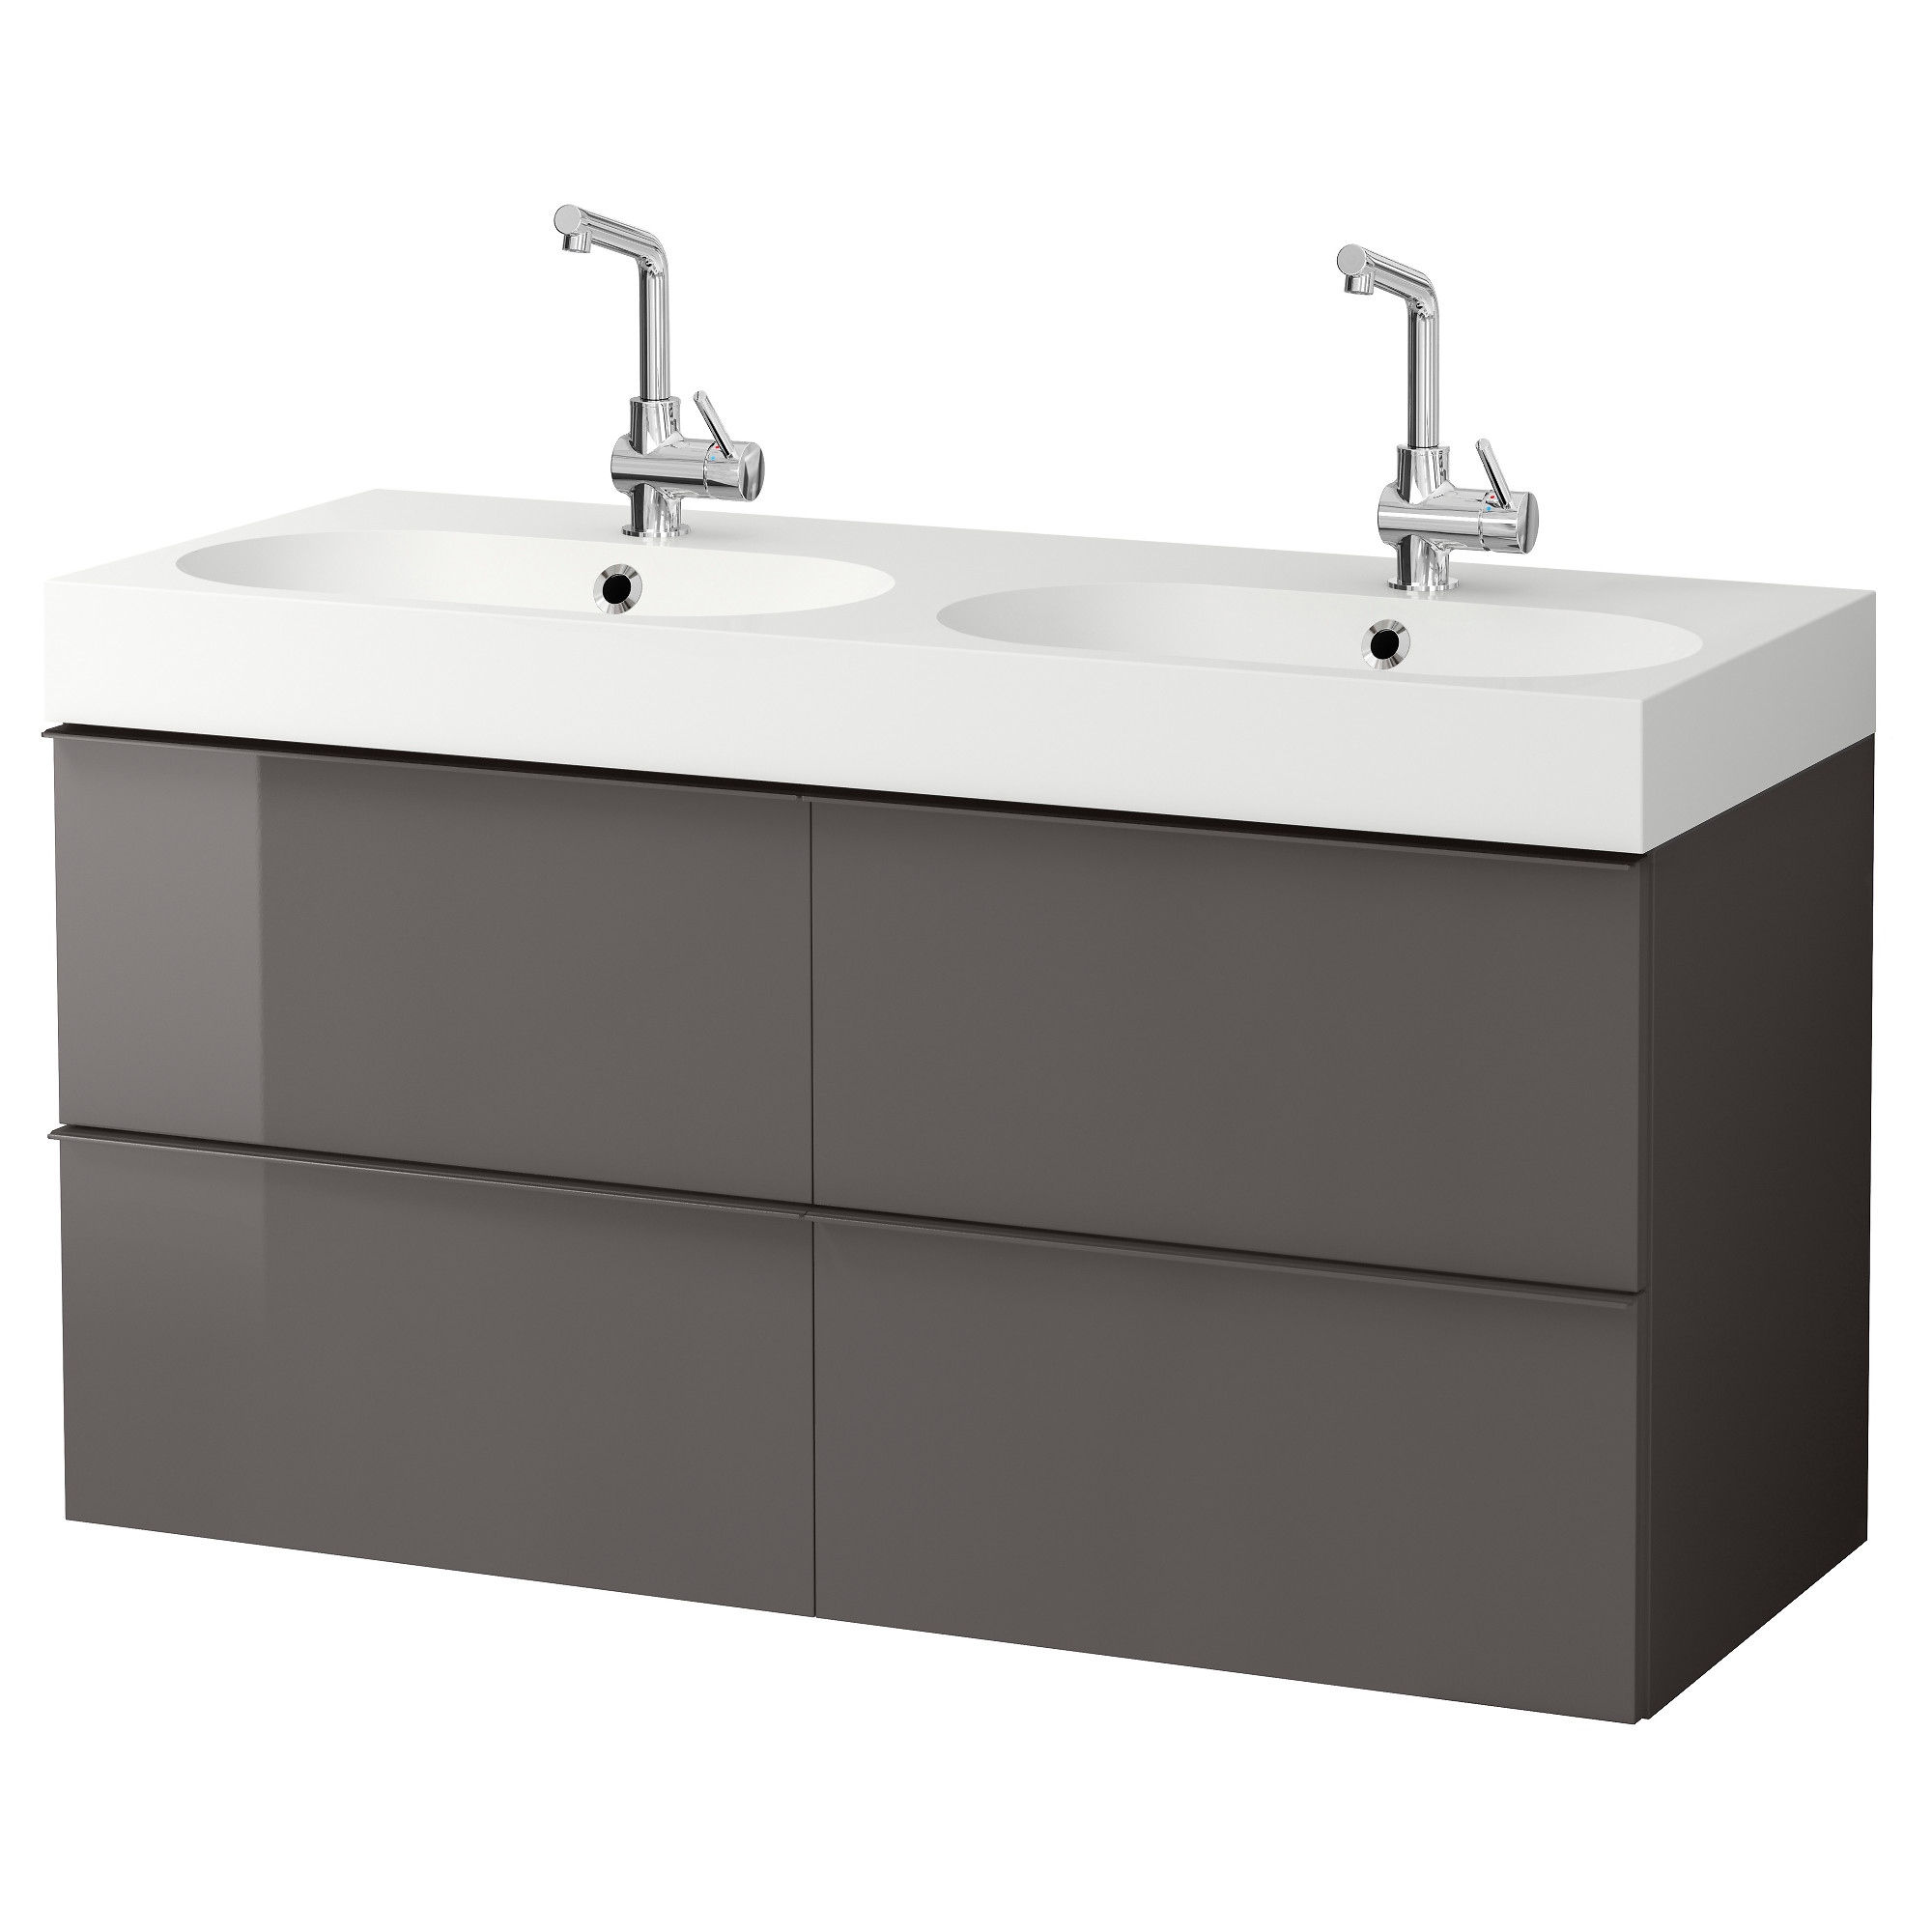 Godmorgon Br Viken Sink Cabinet With 4 Drawers High Gloss Gray Width 48